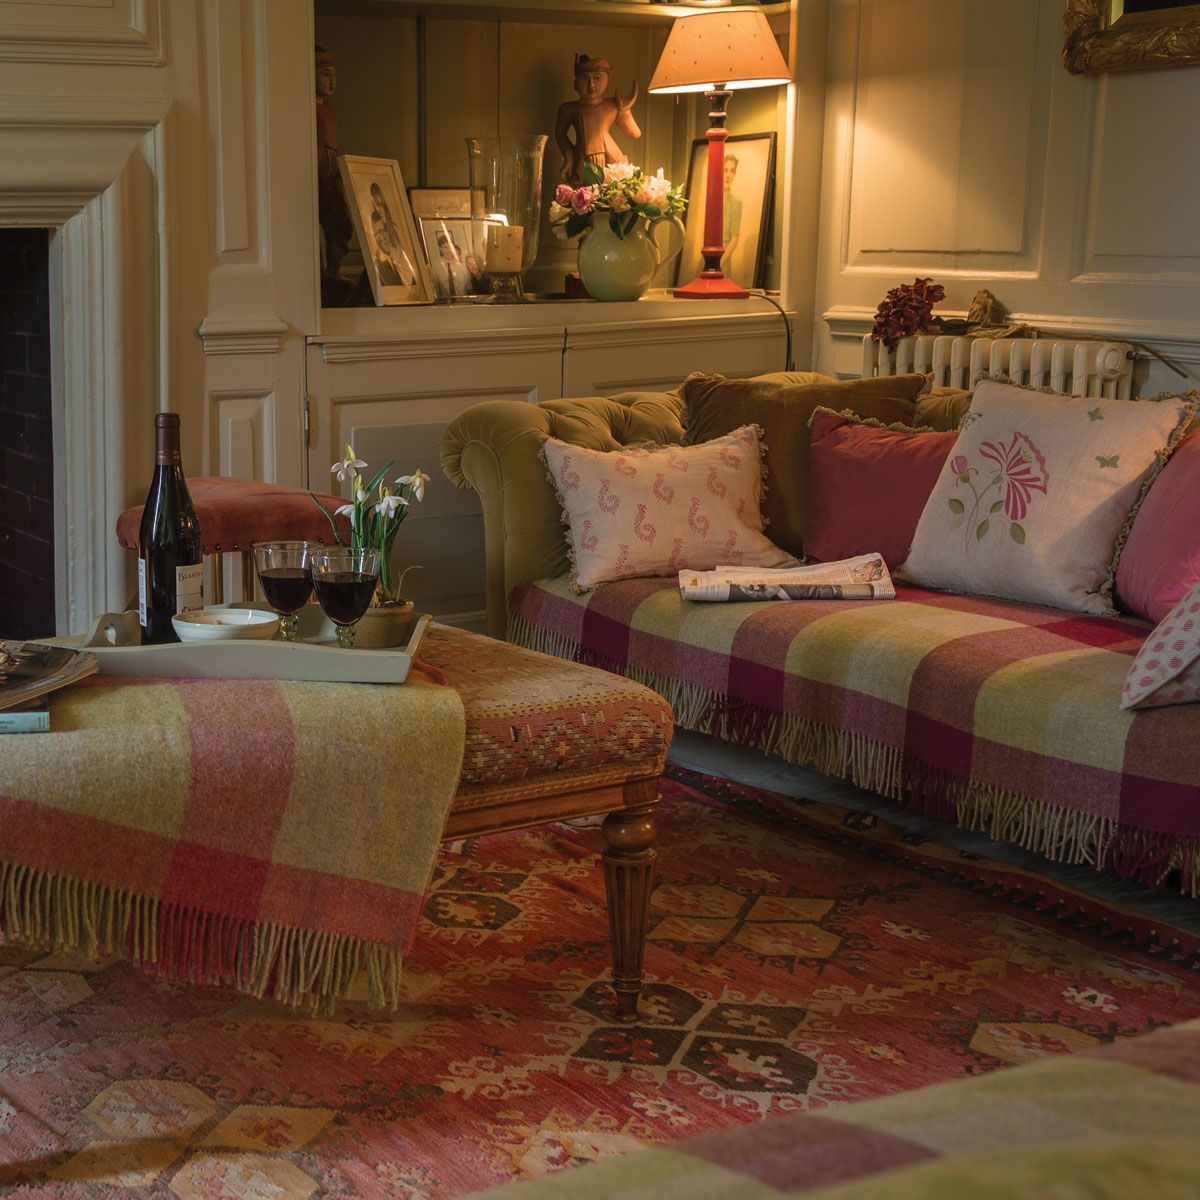 Lovely Fabrics, Colors And Textures Throughout The Room